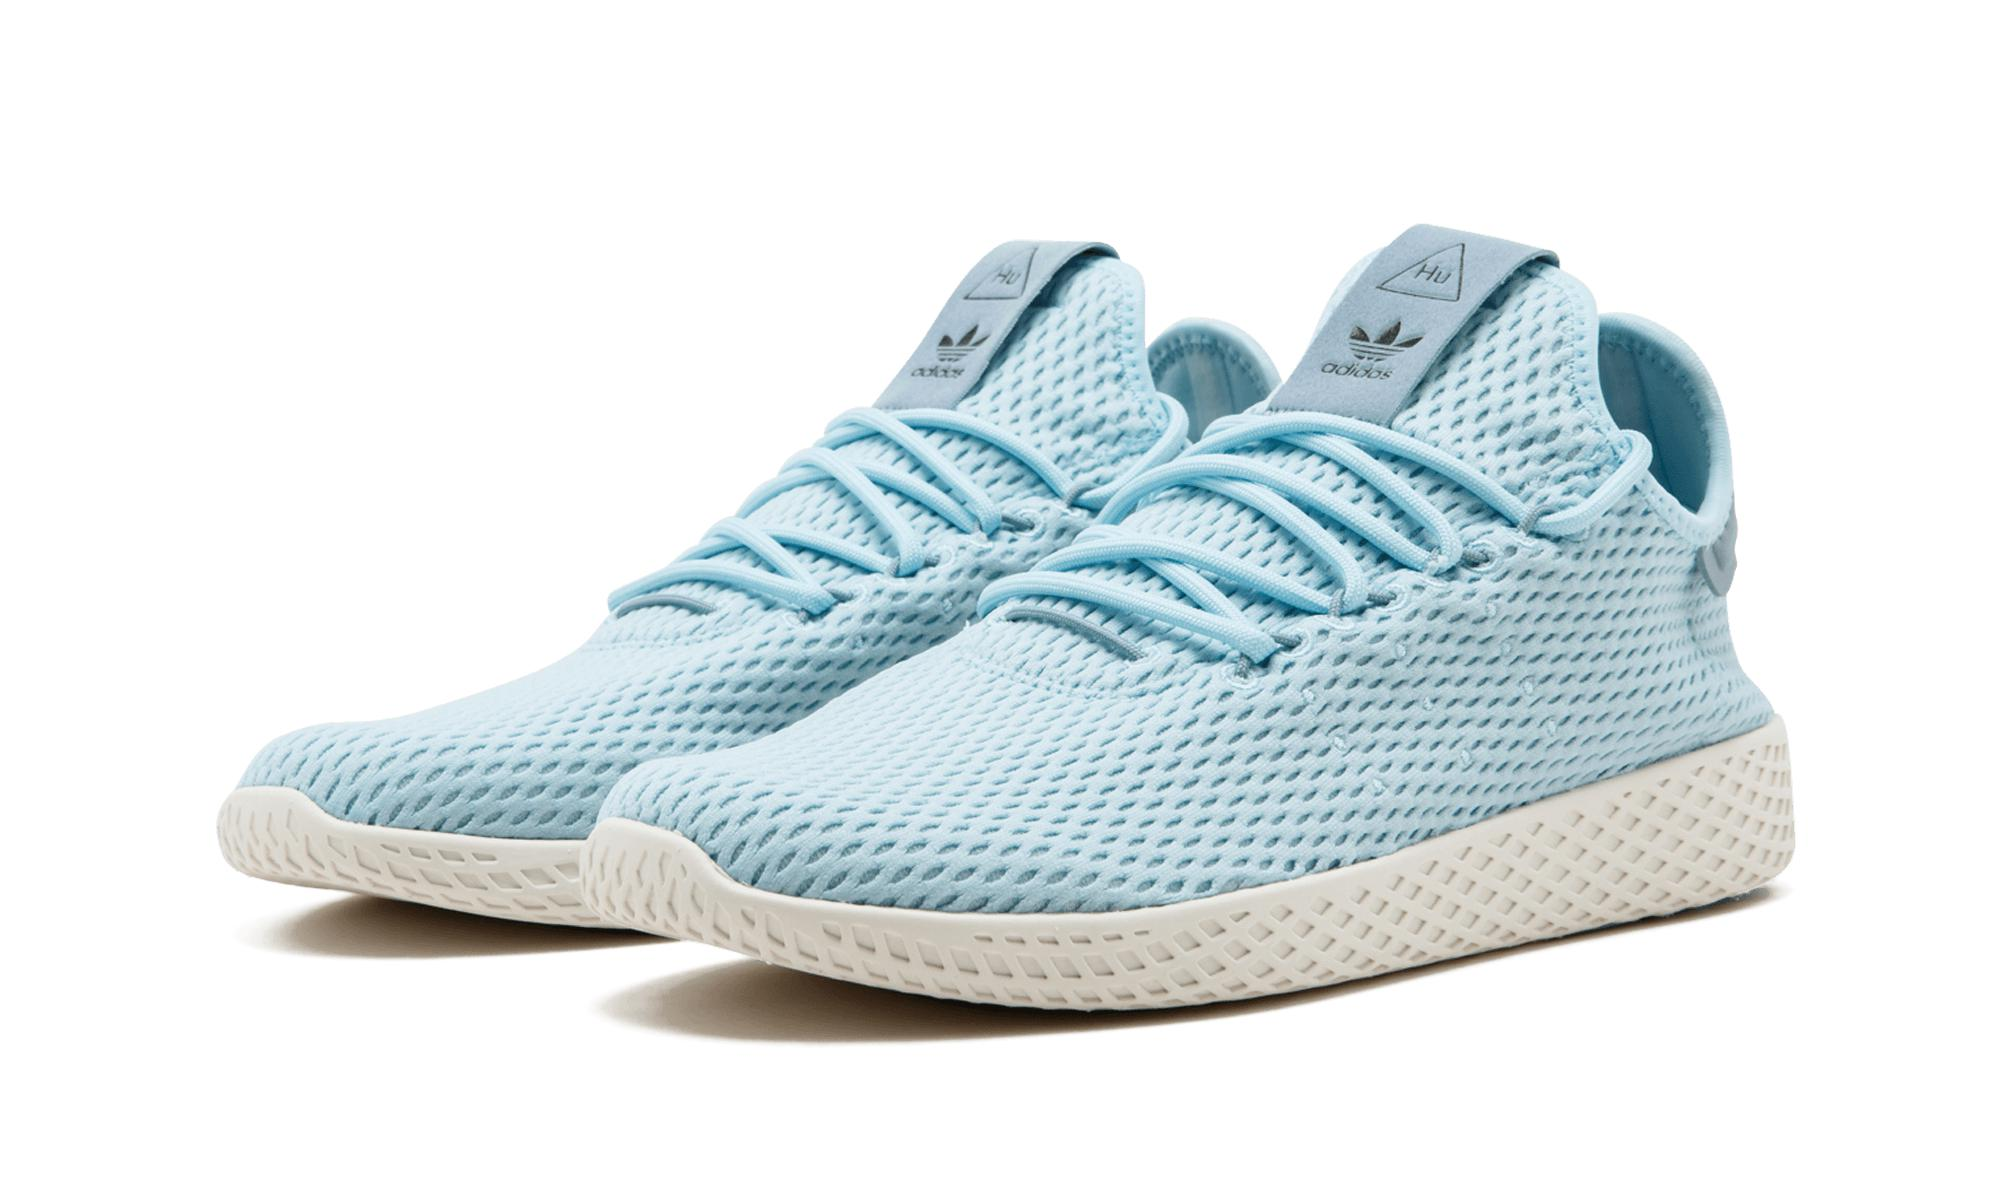 92f66807c806f Adidas - Blue Pharrell Williams Tennis Hu for Men - Lyst. View fullscreen